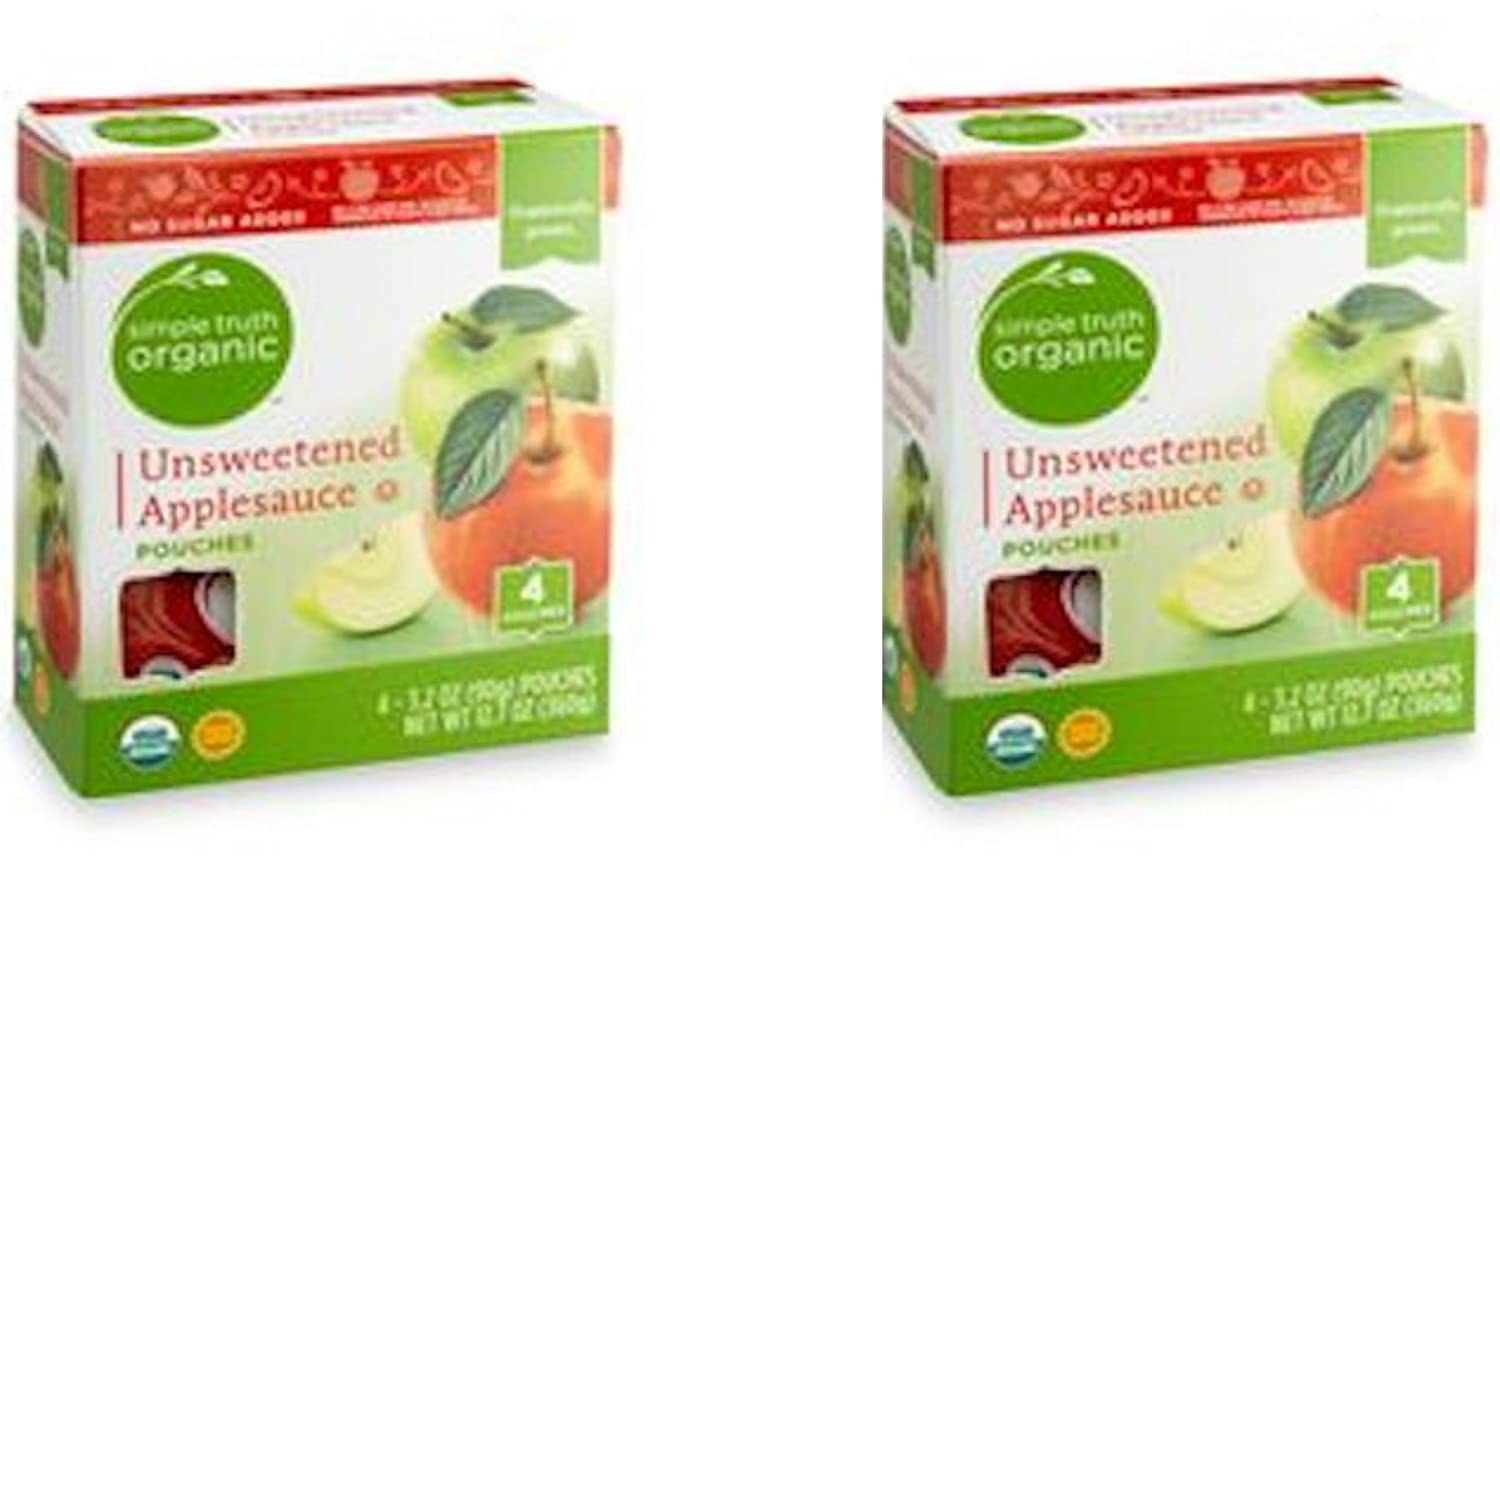 Simple Truth Organic Unsweetened Applesauce 4 count Pouches (Pack of 2)